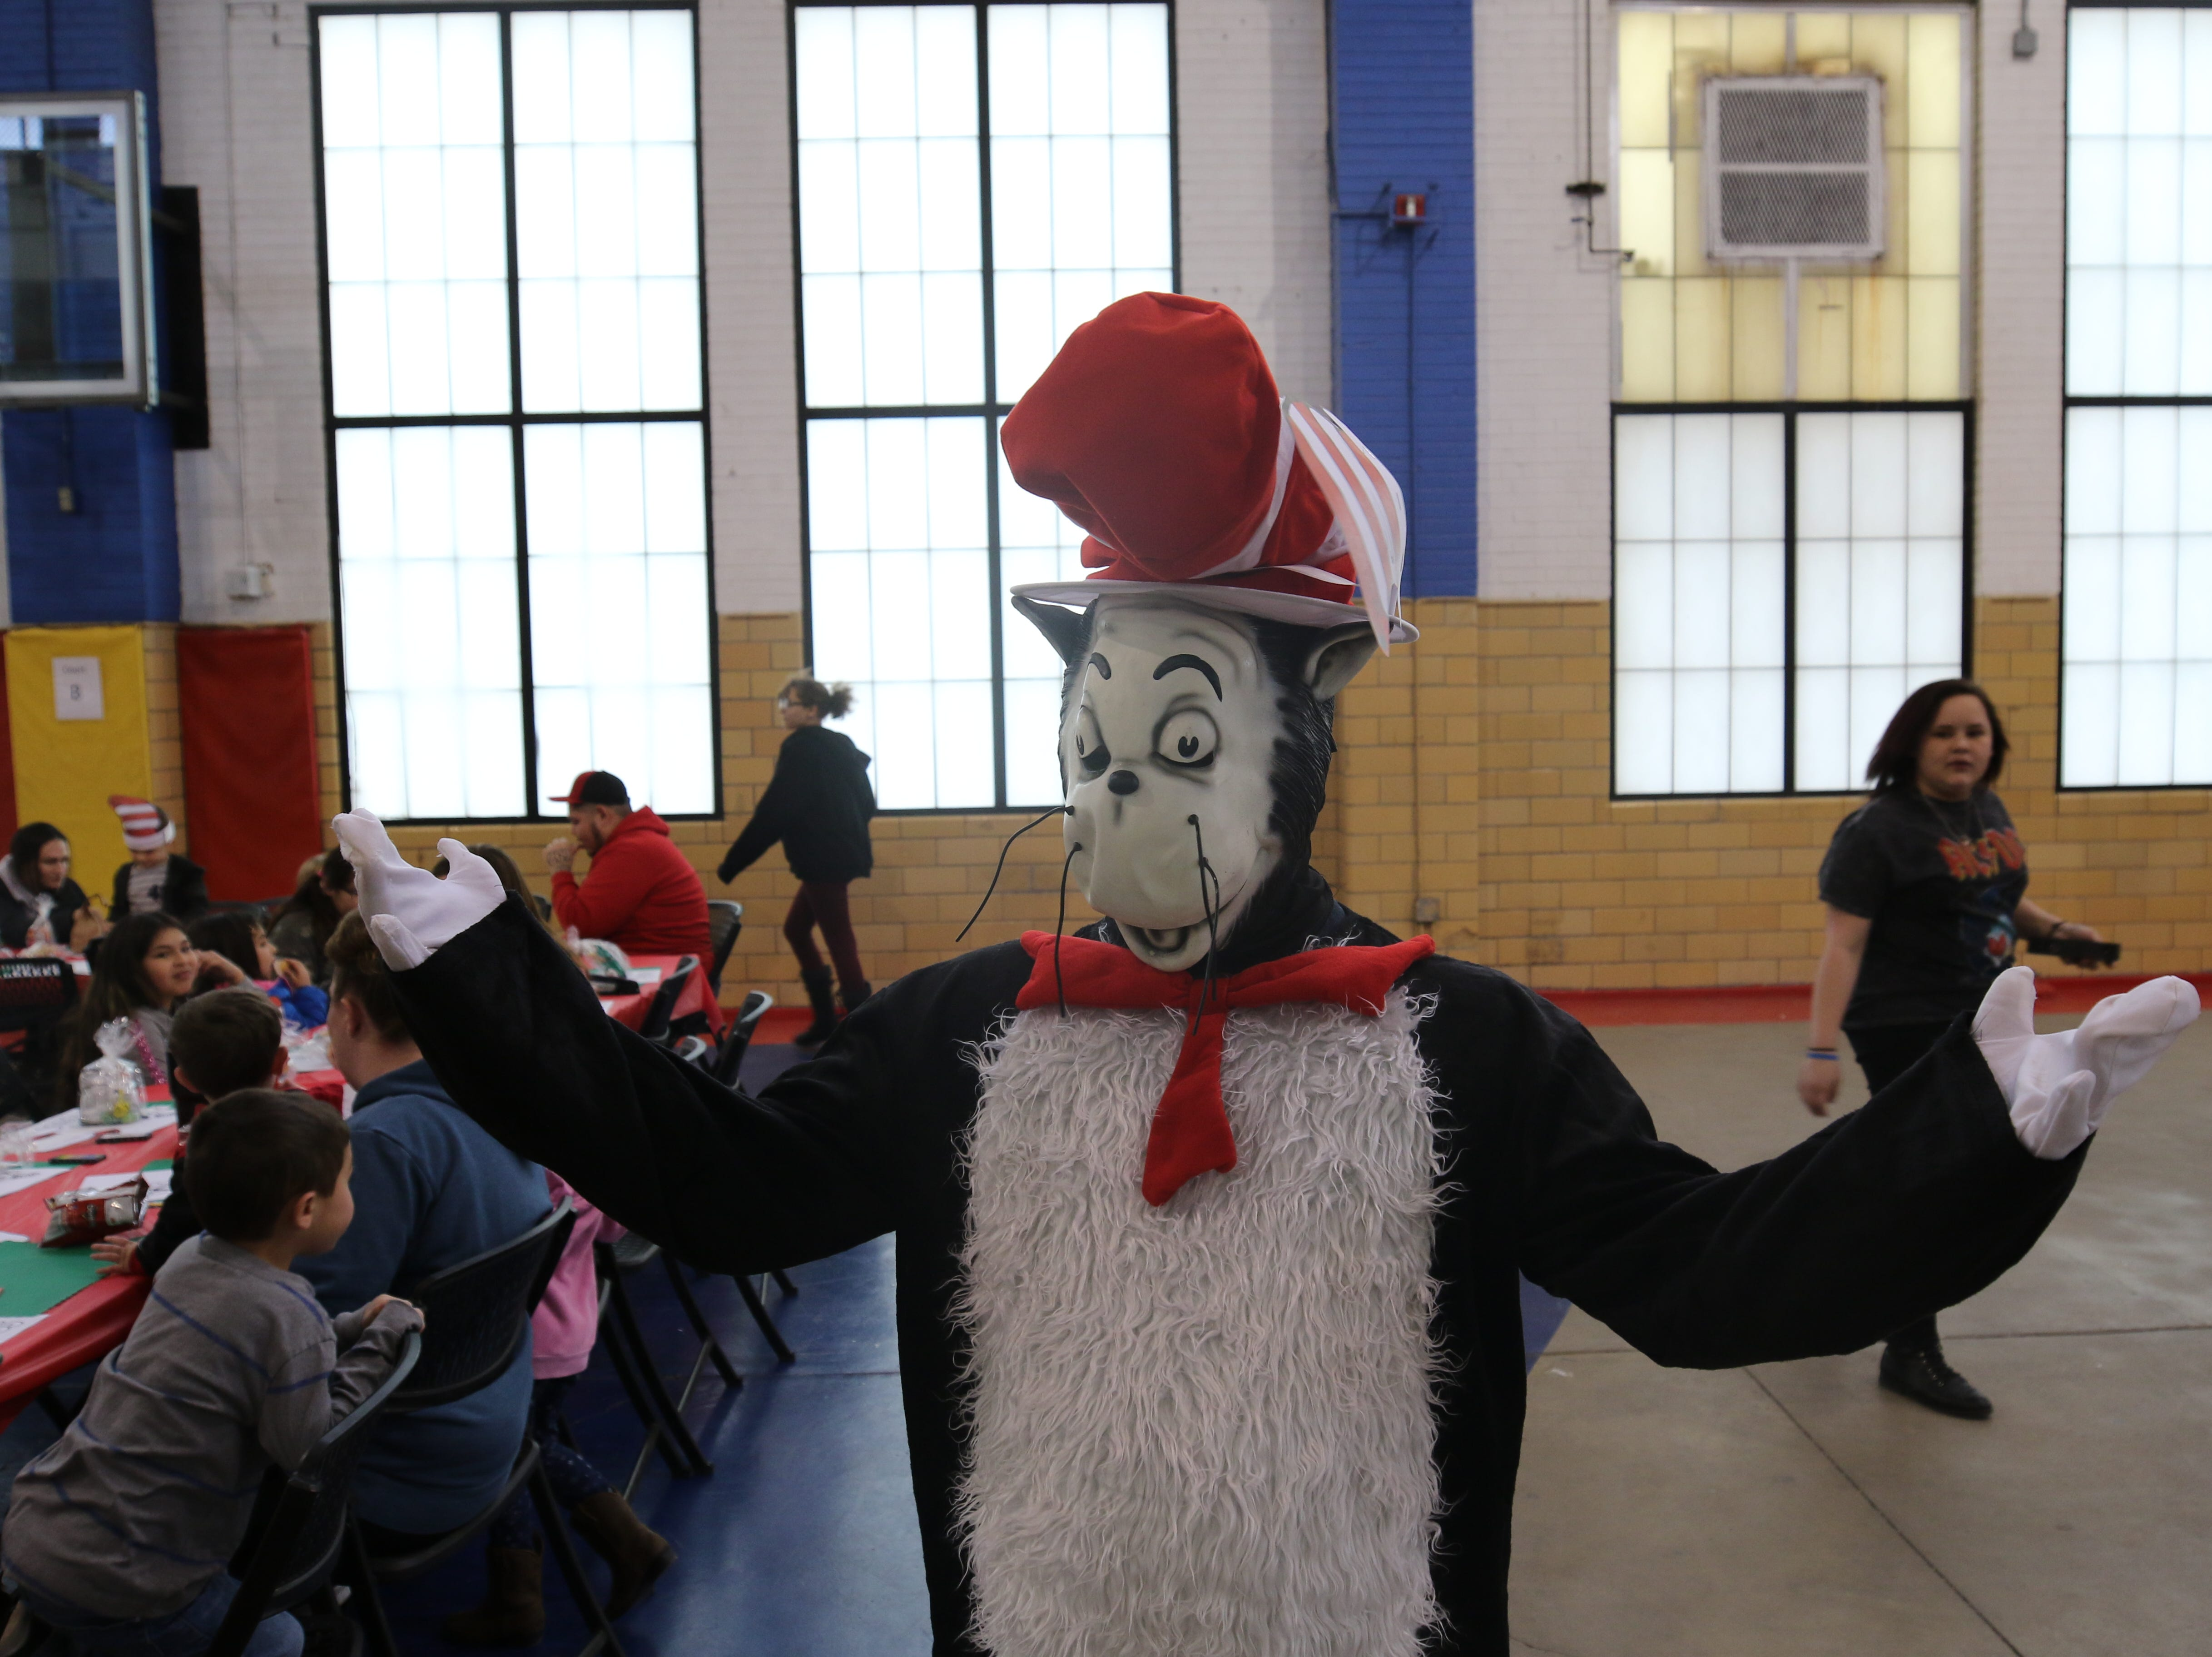 The Cat in the Hat graced the party at the Riverside Recreation Center March 4.